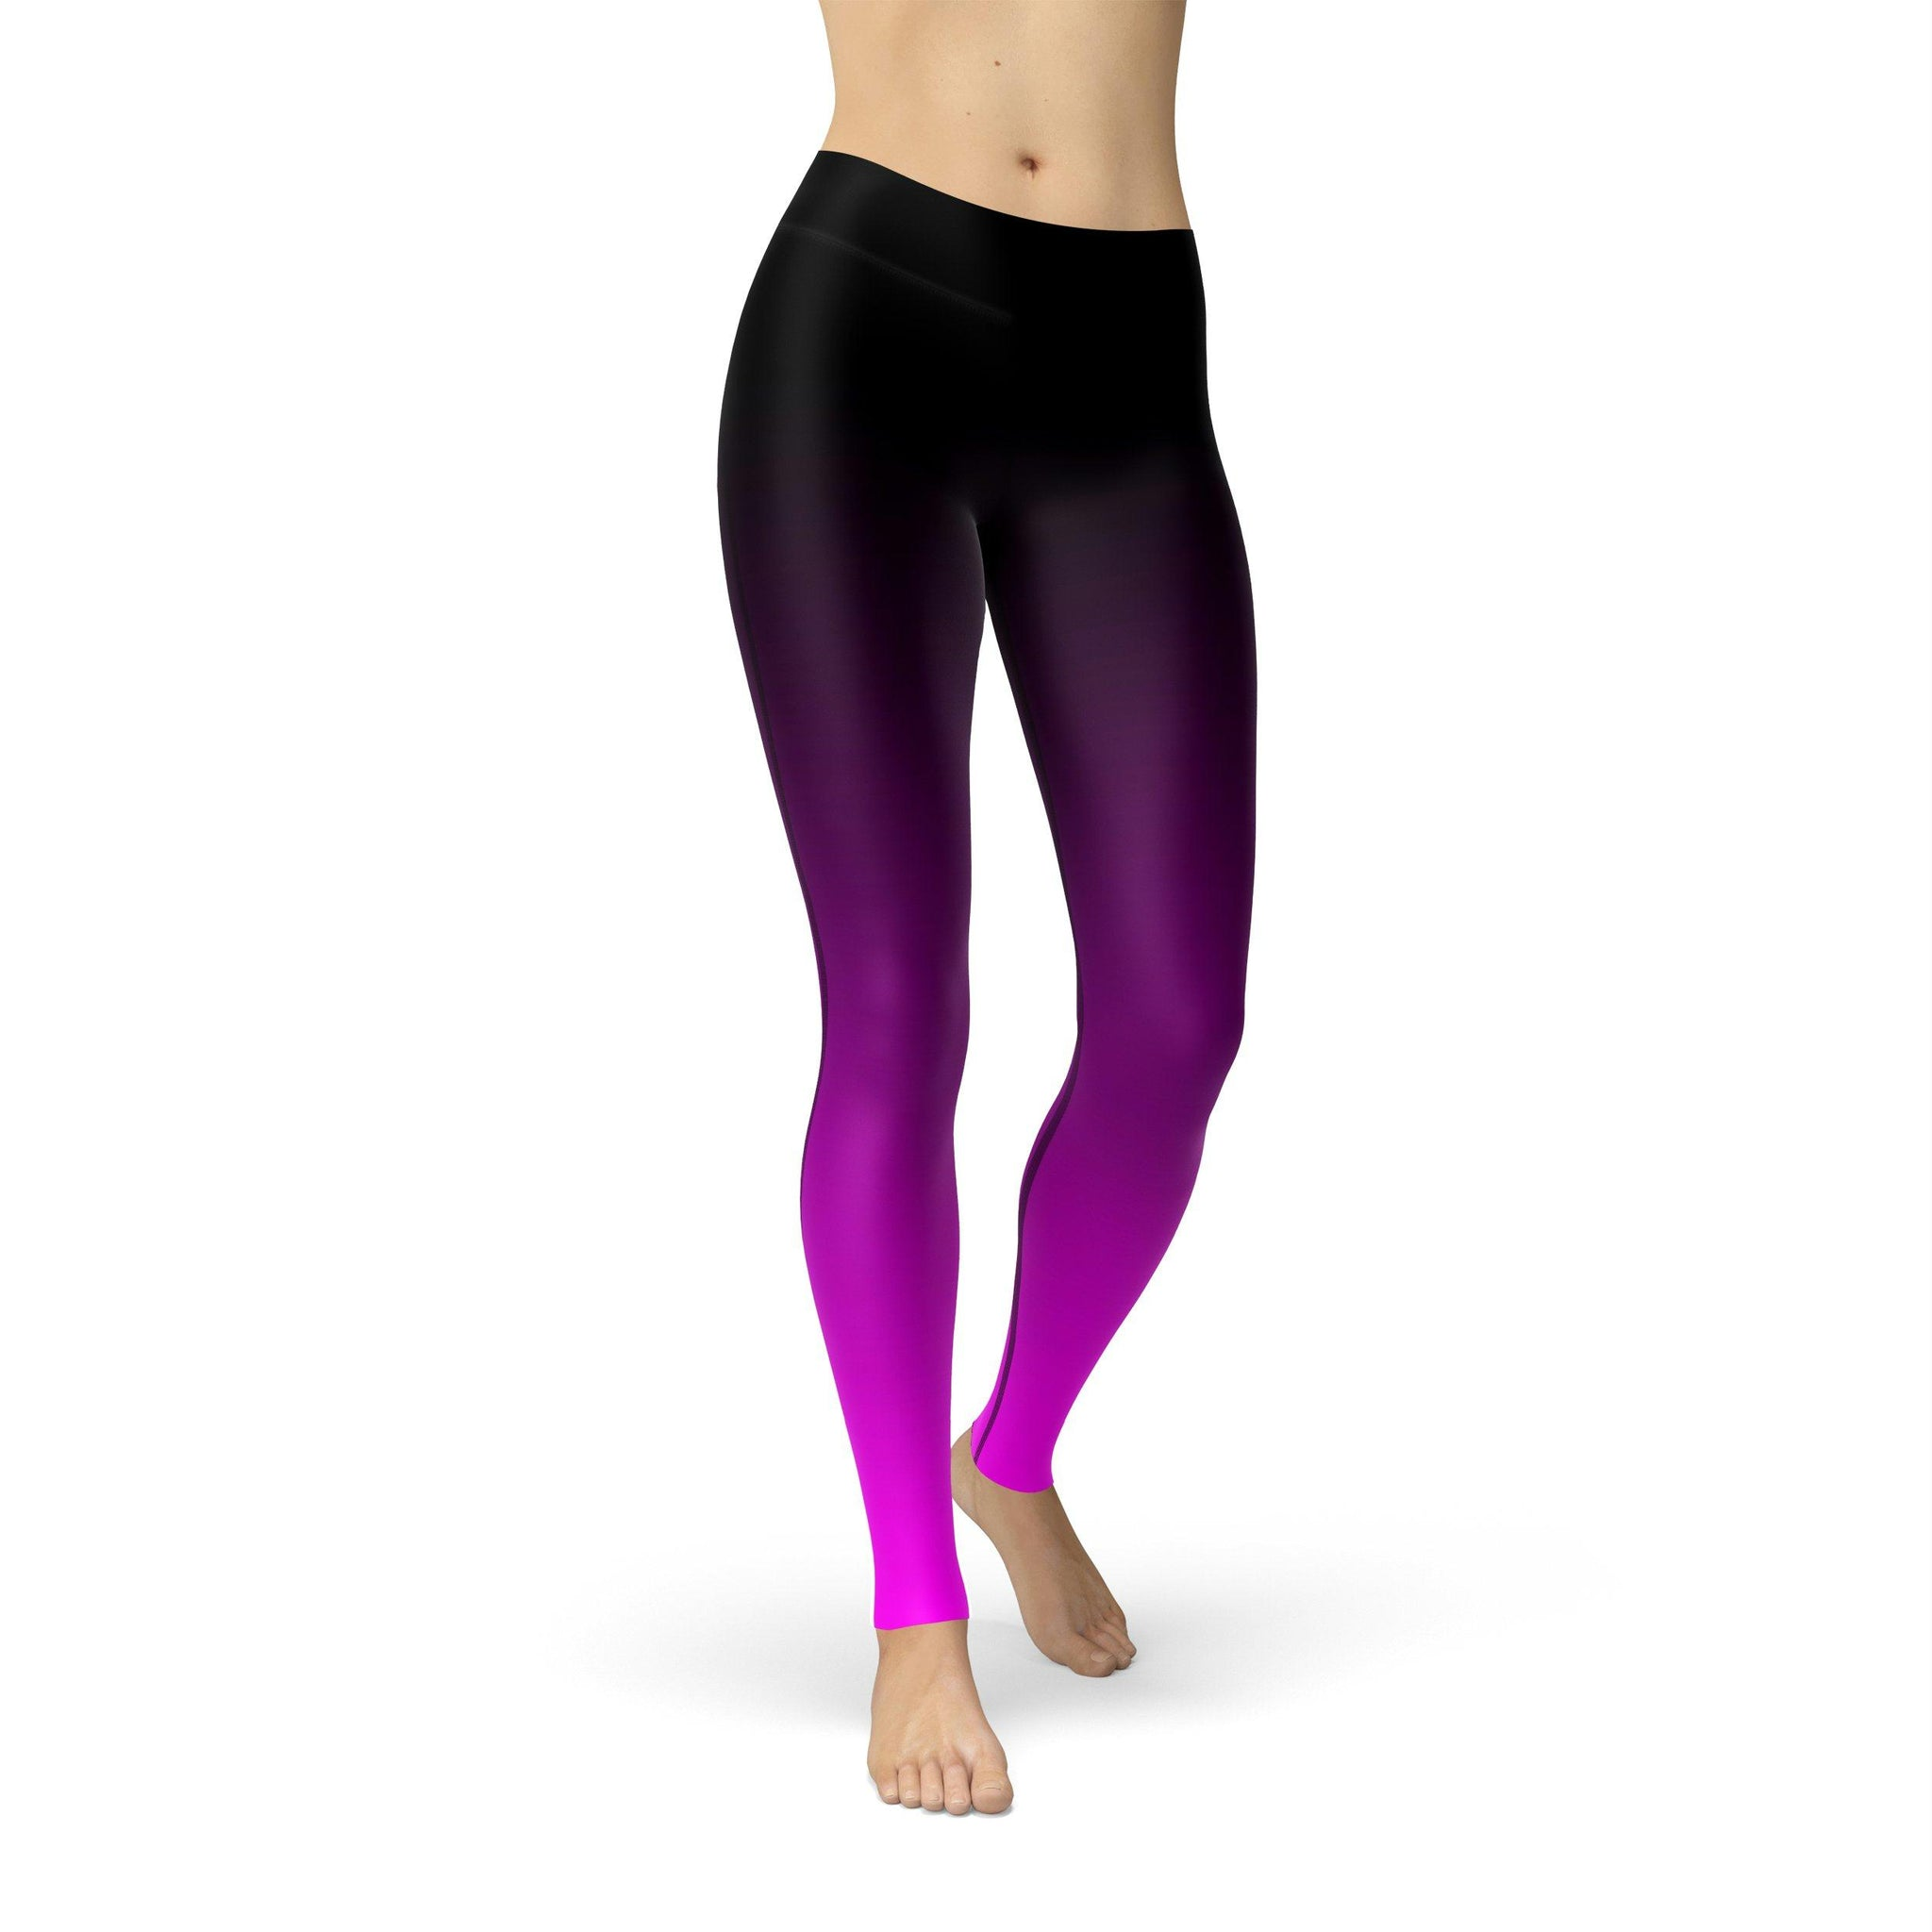 High-Waist Sangria Fusion Yoga Pants